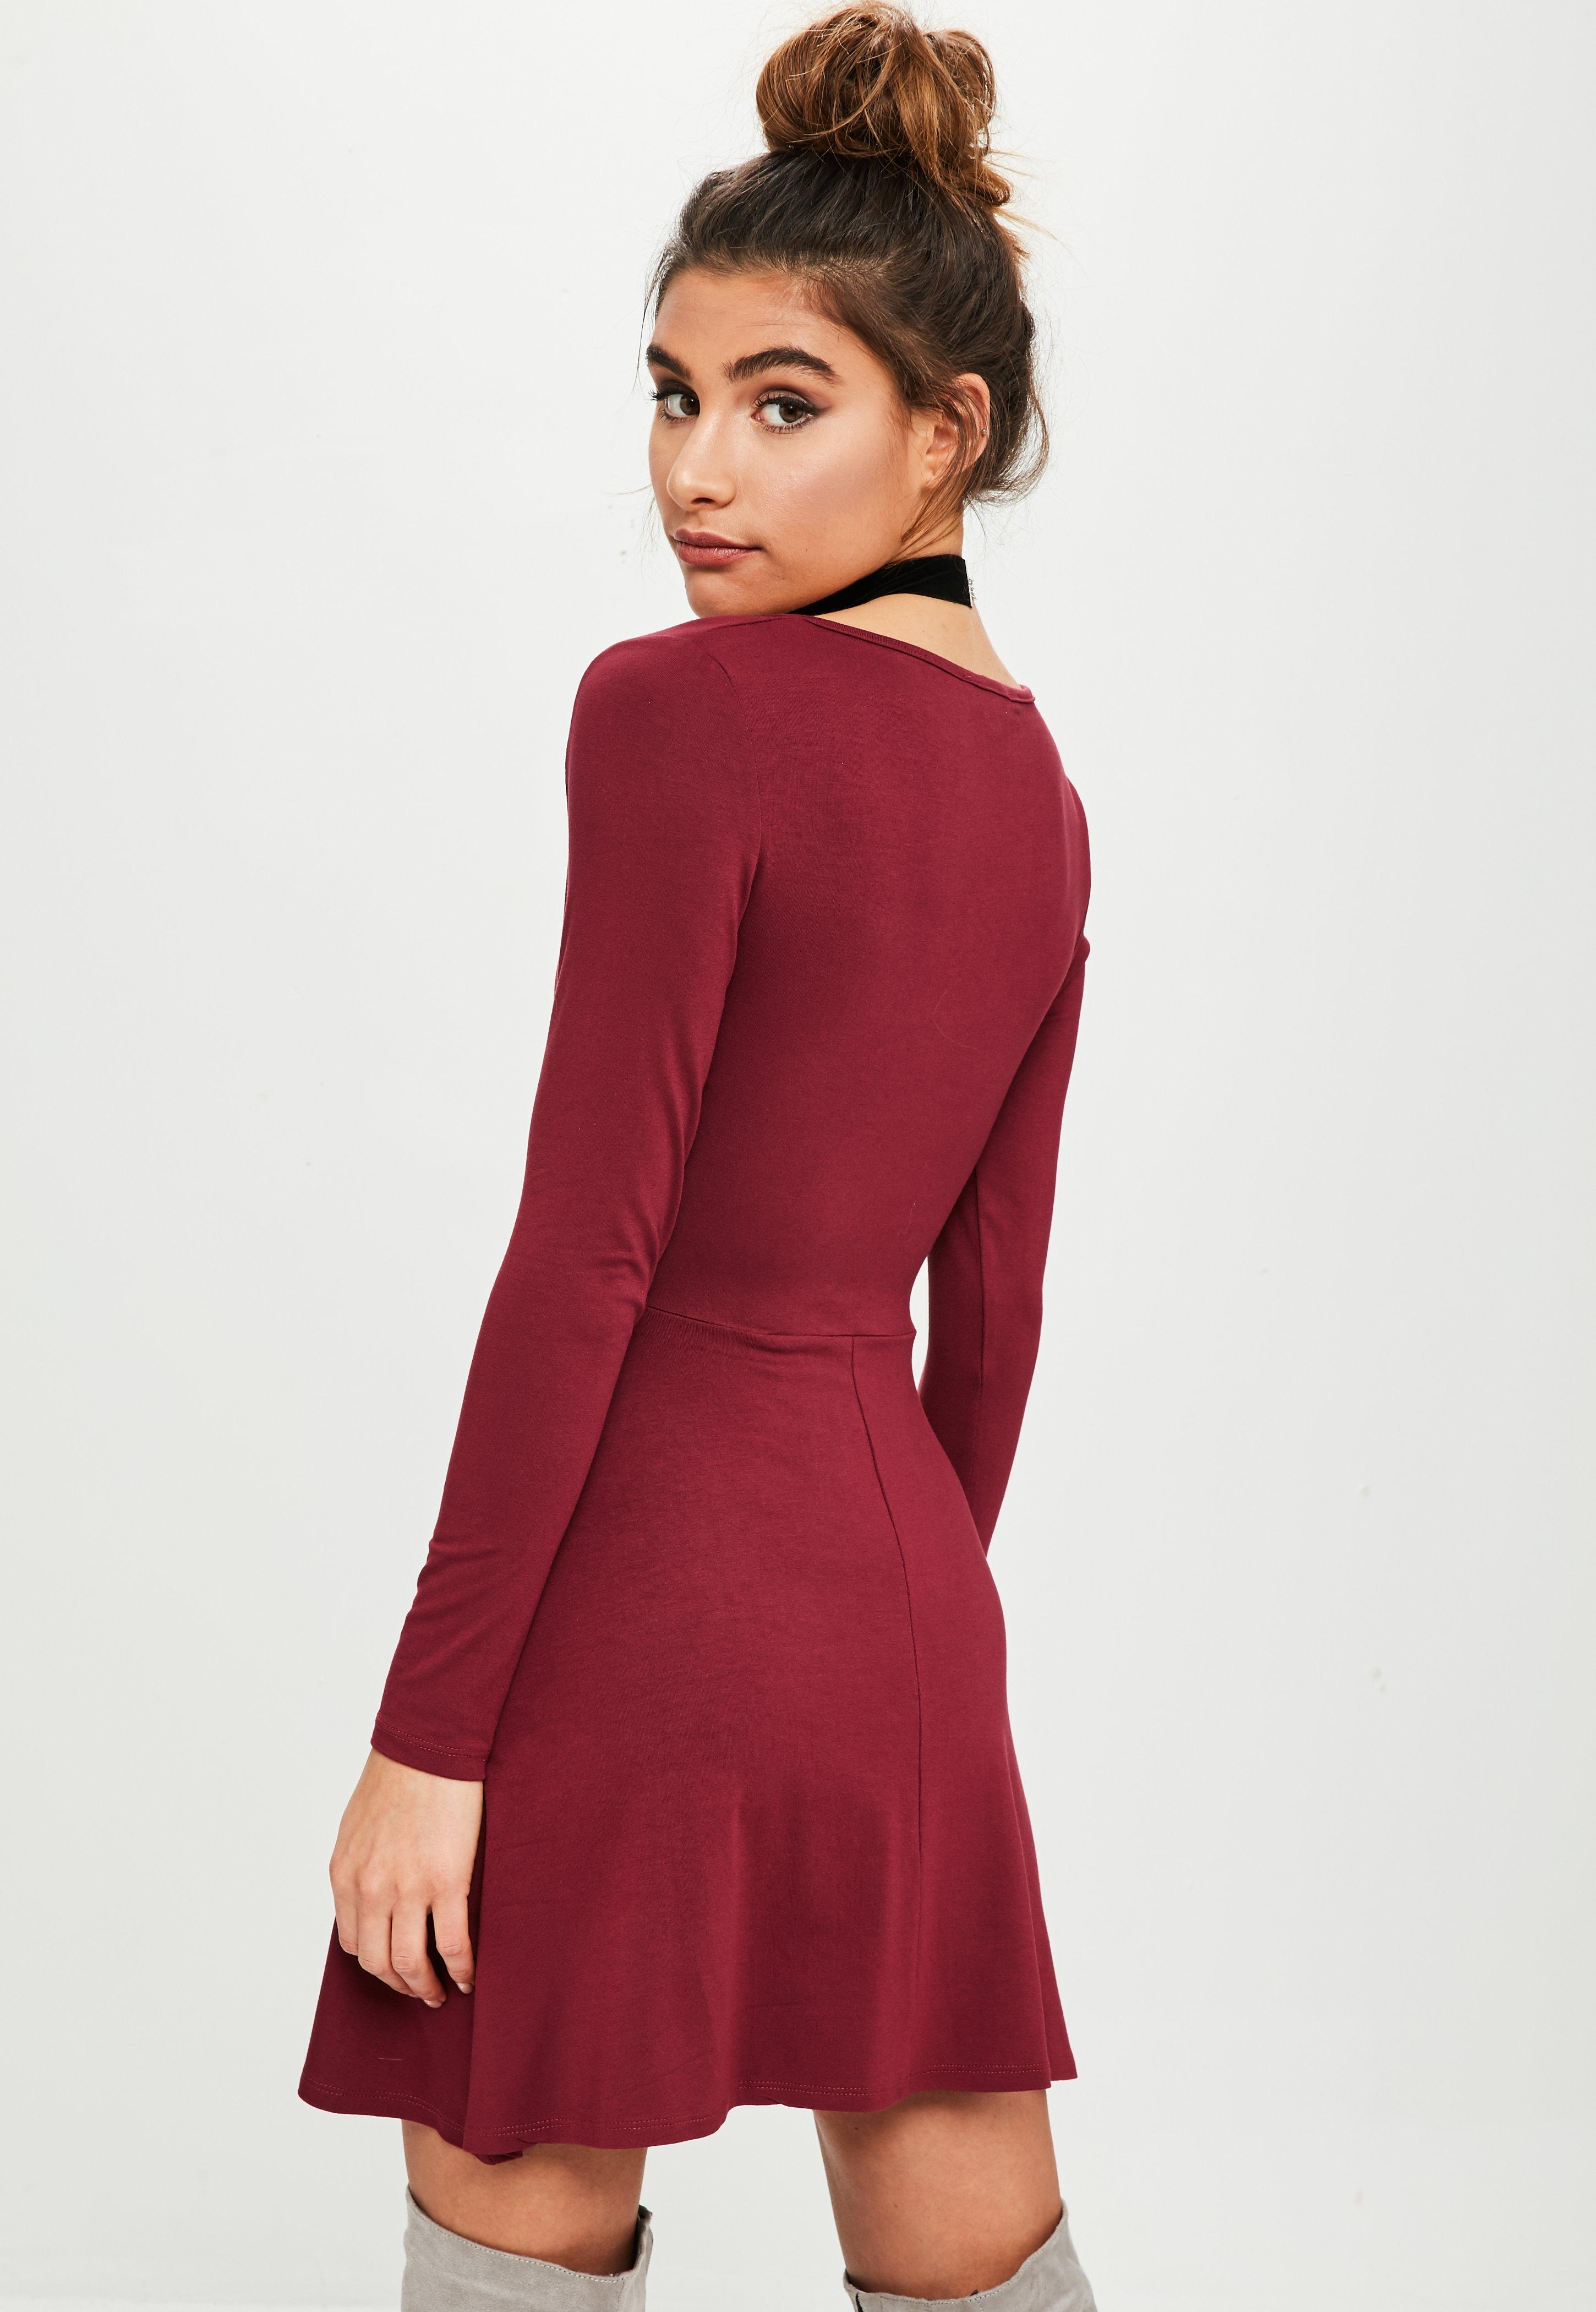 e53662a56601 Lyst - Missguided Burgundy Long Sleeve Jersey Skater Dress in Red